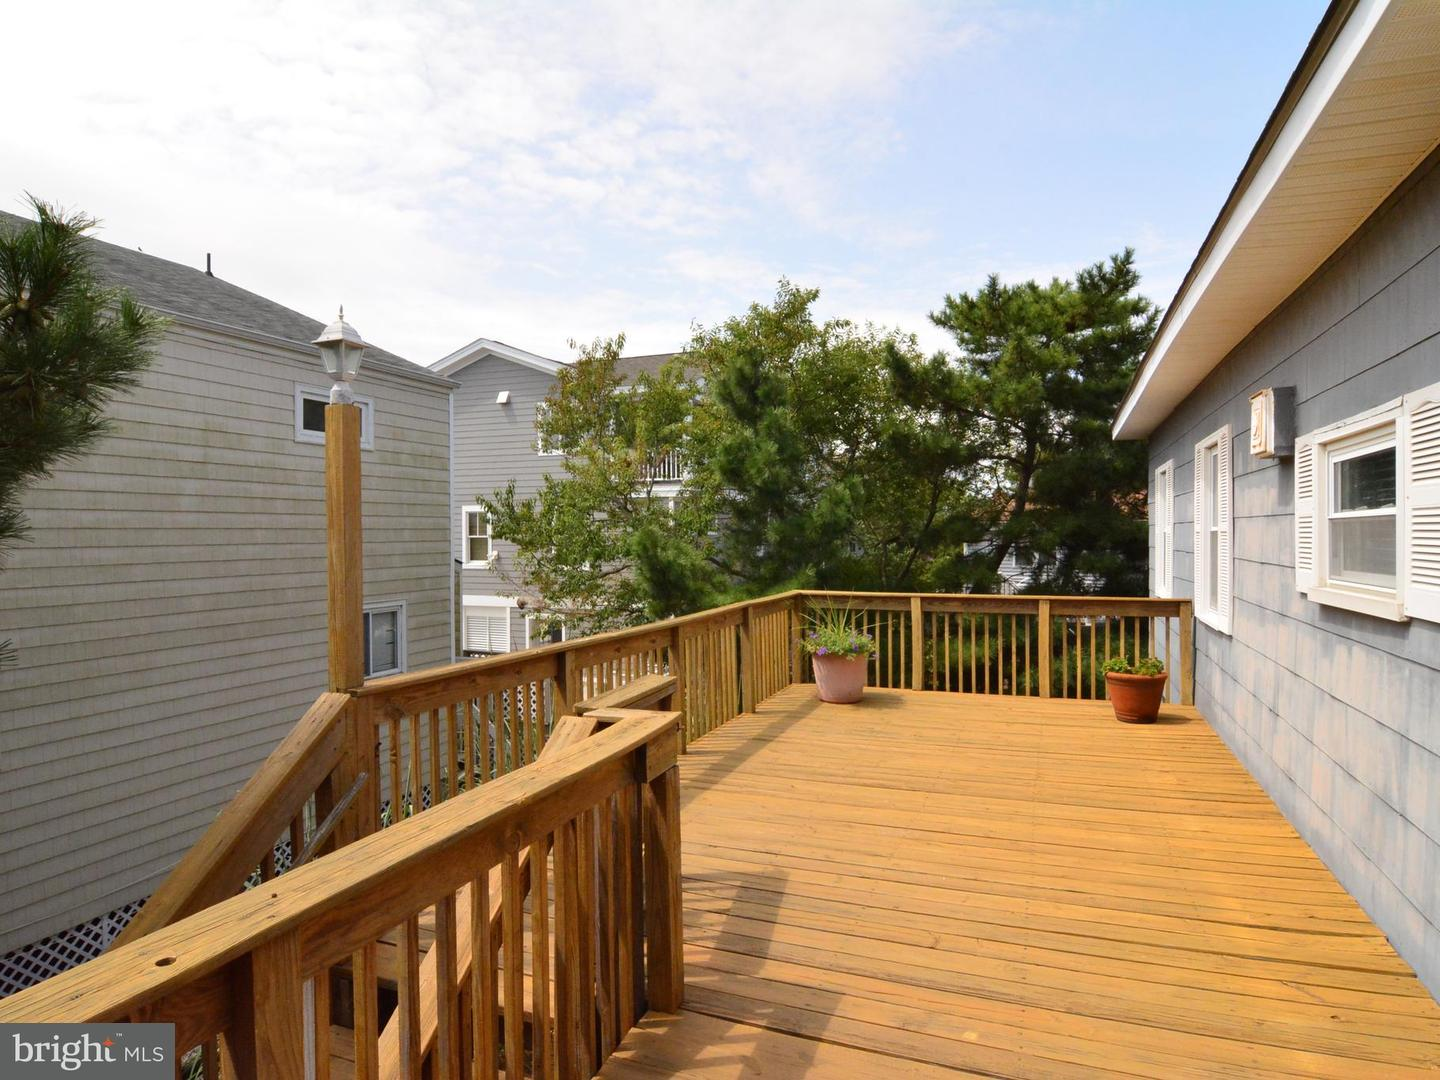 1002299338-300501703093-2018-08-30-10-08-41 4 S 4th St | South Bethany, De Real Estate For Sale | MLS# 1002299338  - Suzanne Macnab